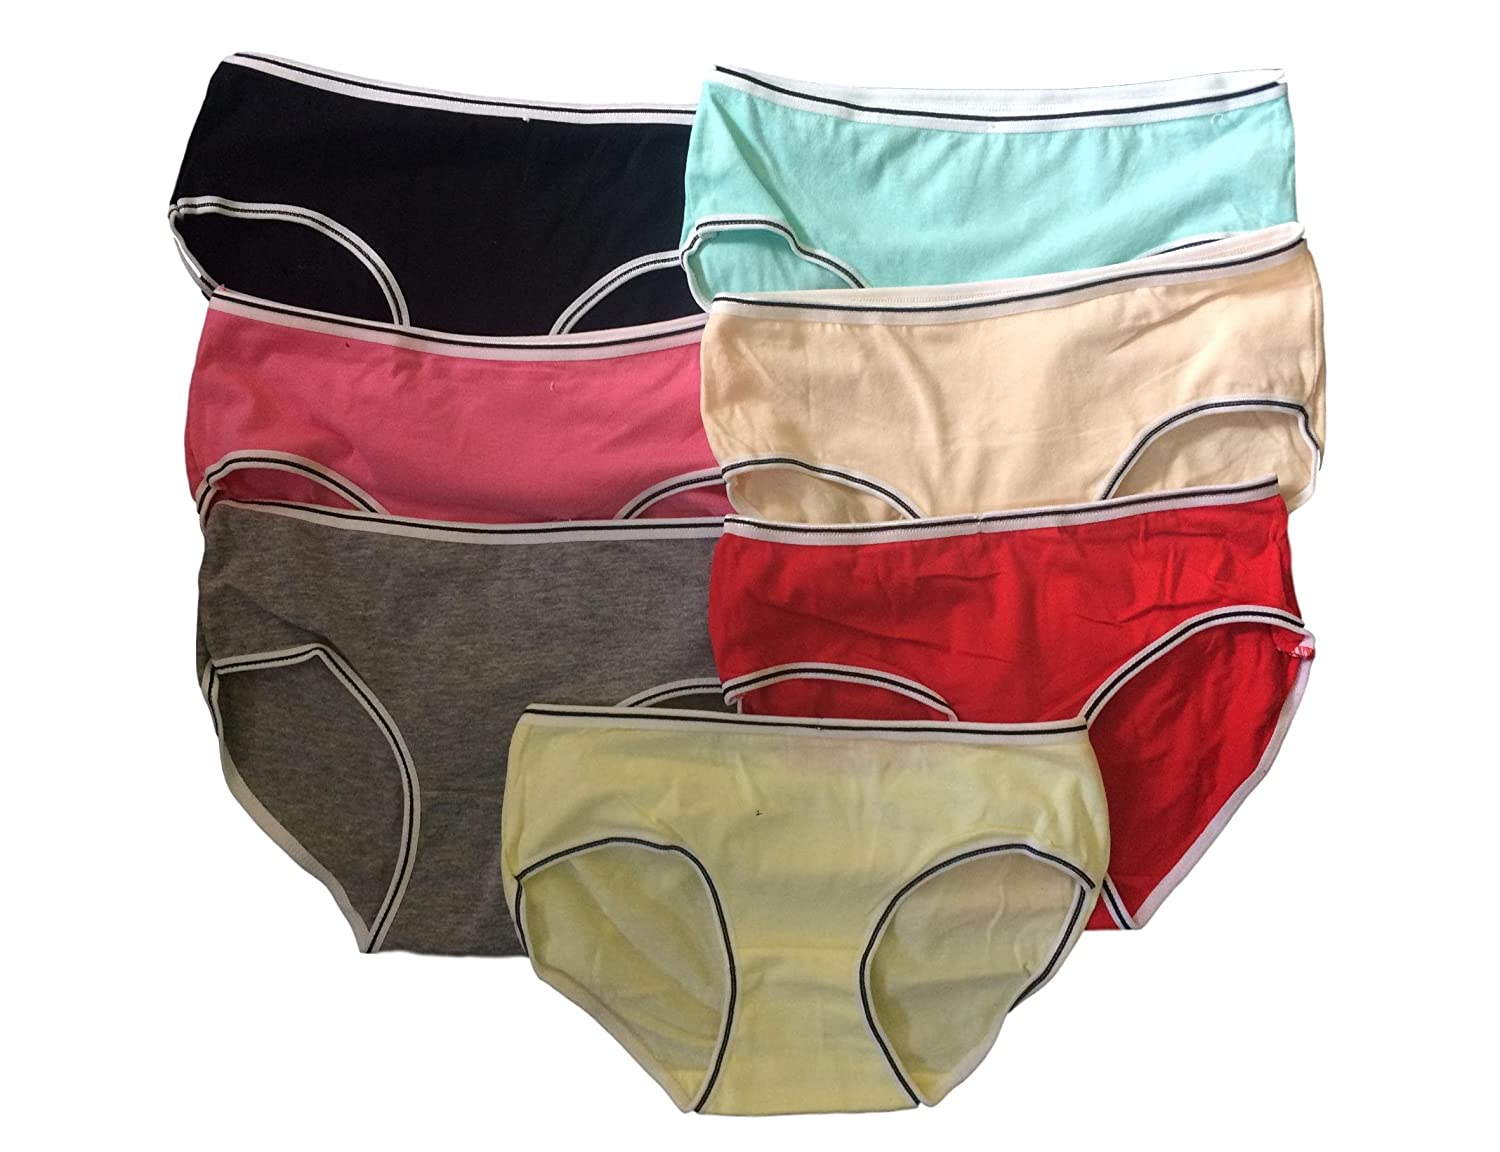 CC Teen Girls Underwear 7 Pack Briefs/Pants/Knickers